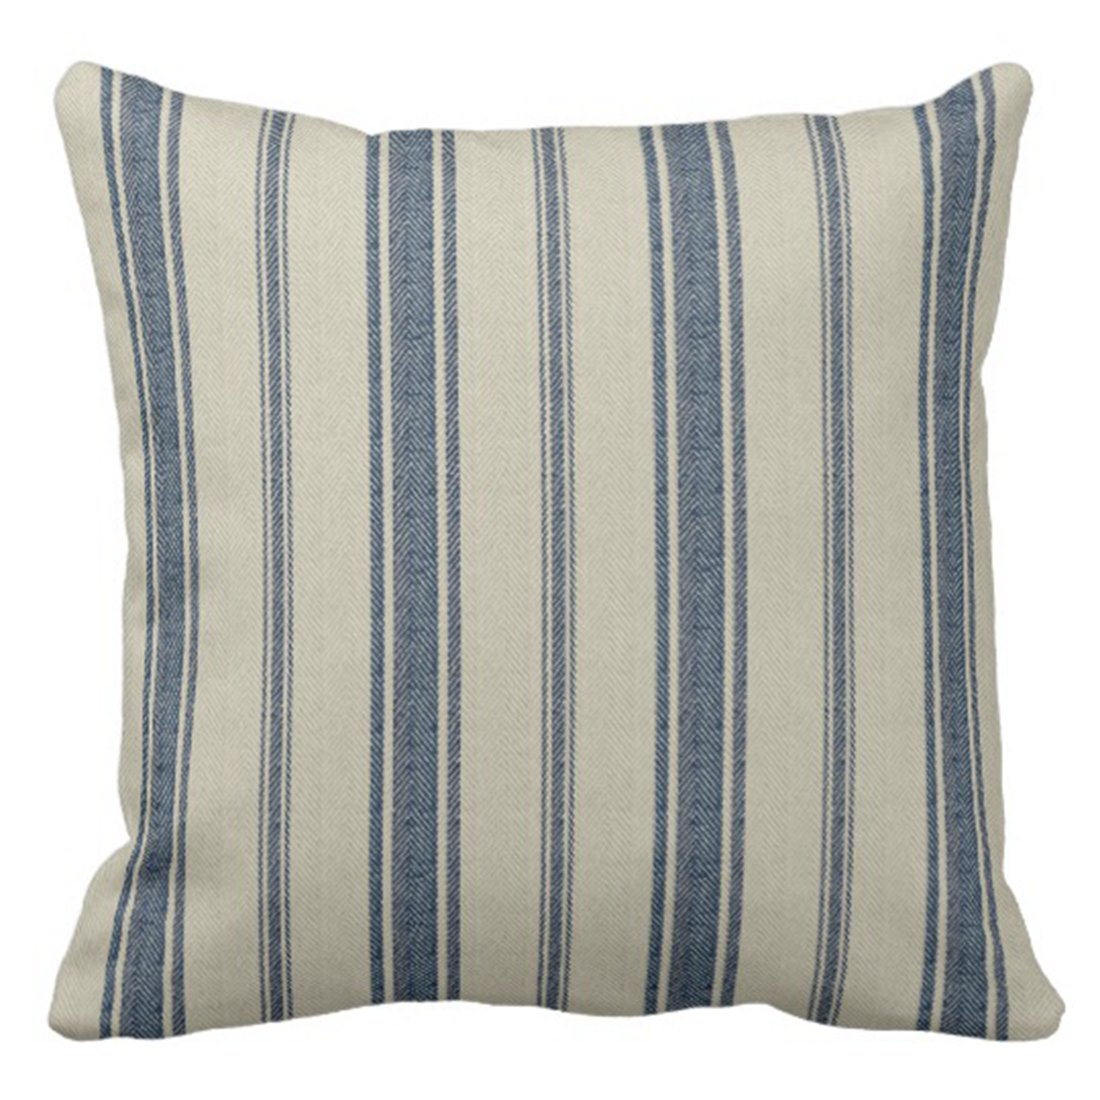 Blue French Stripe Pillow Cover